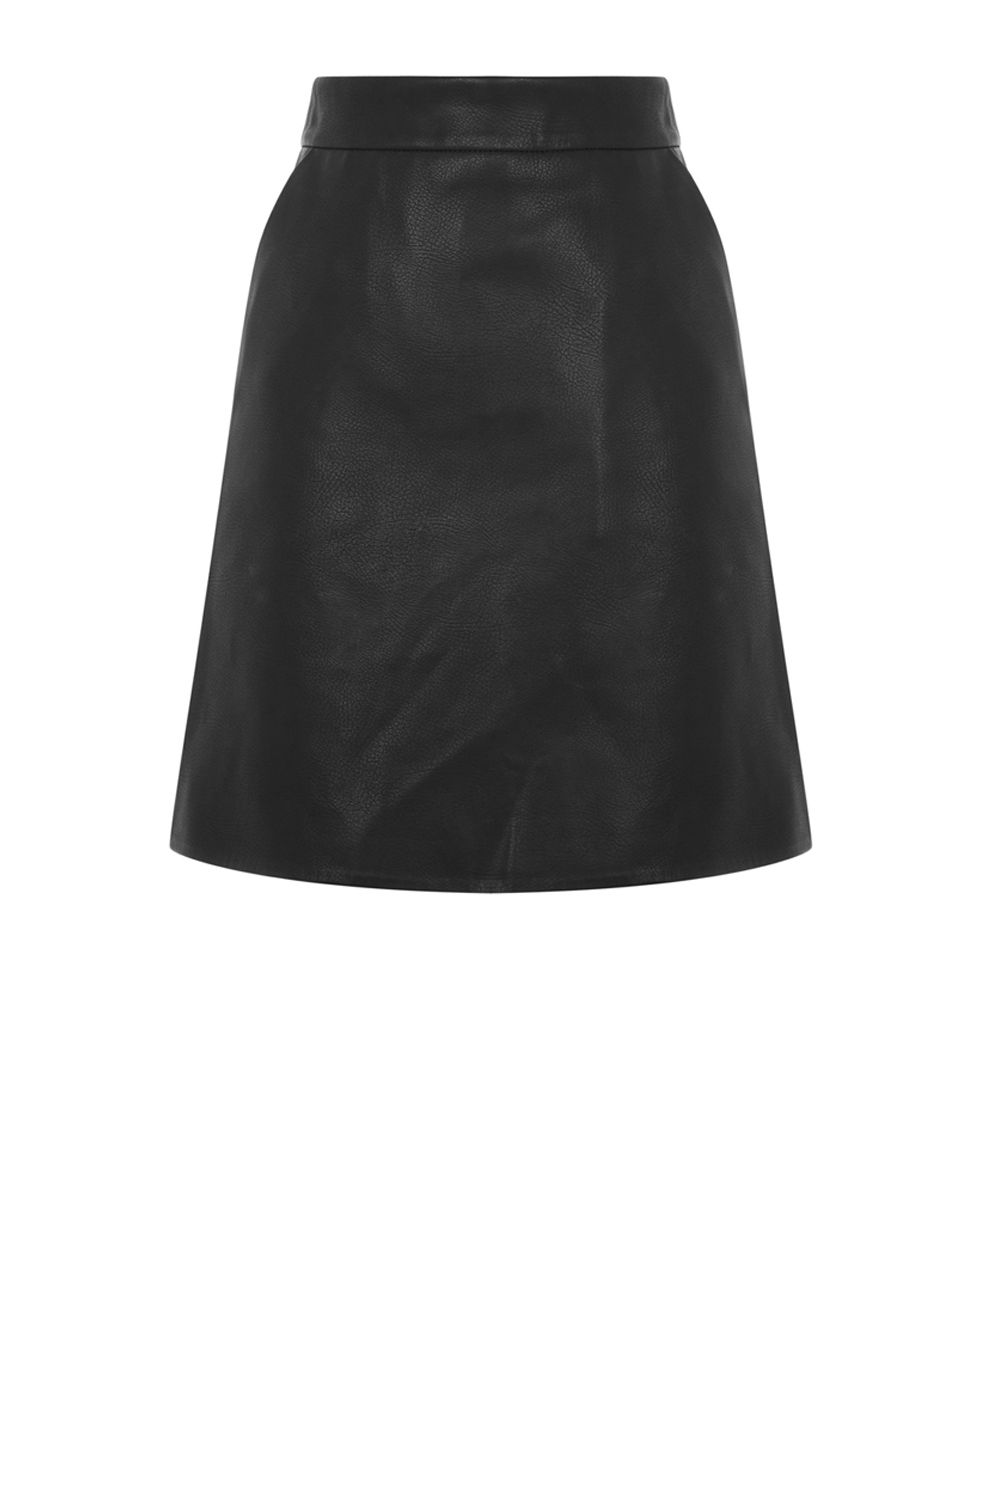 Warehouse Faux Leather Core Pelmet Skirt, Black